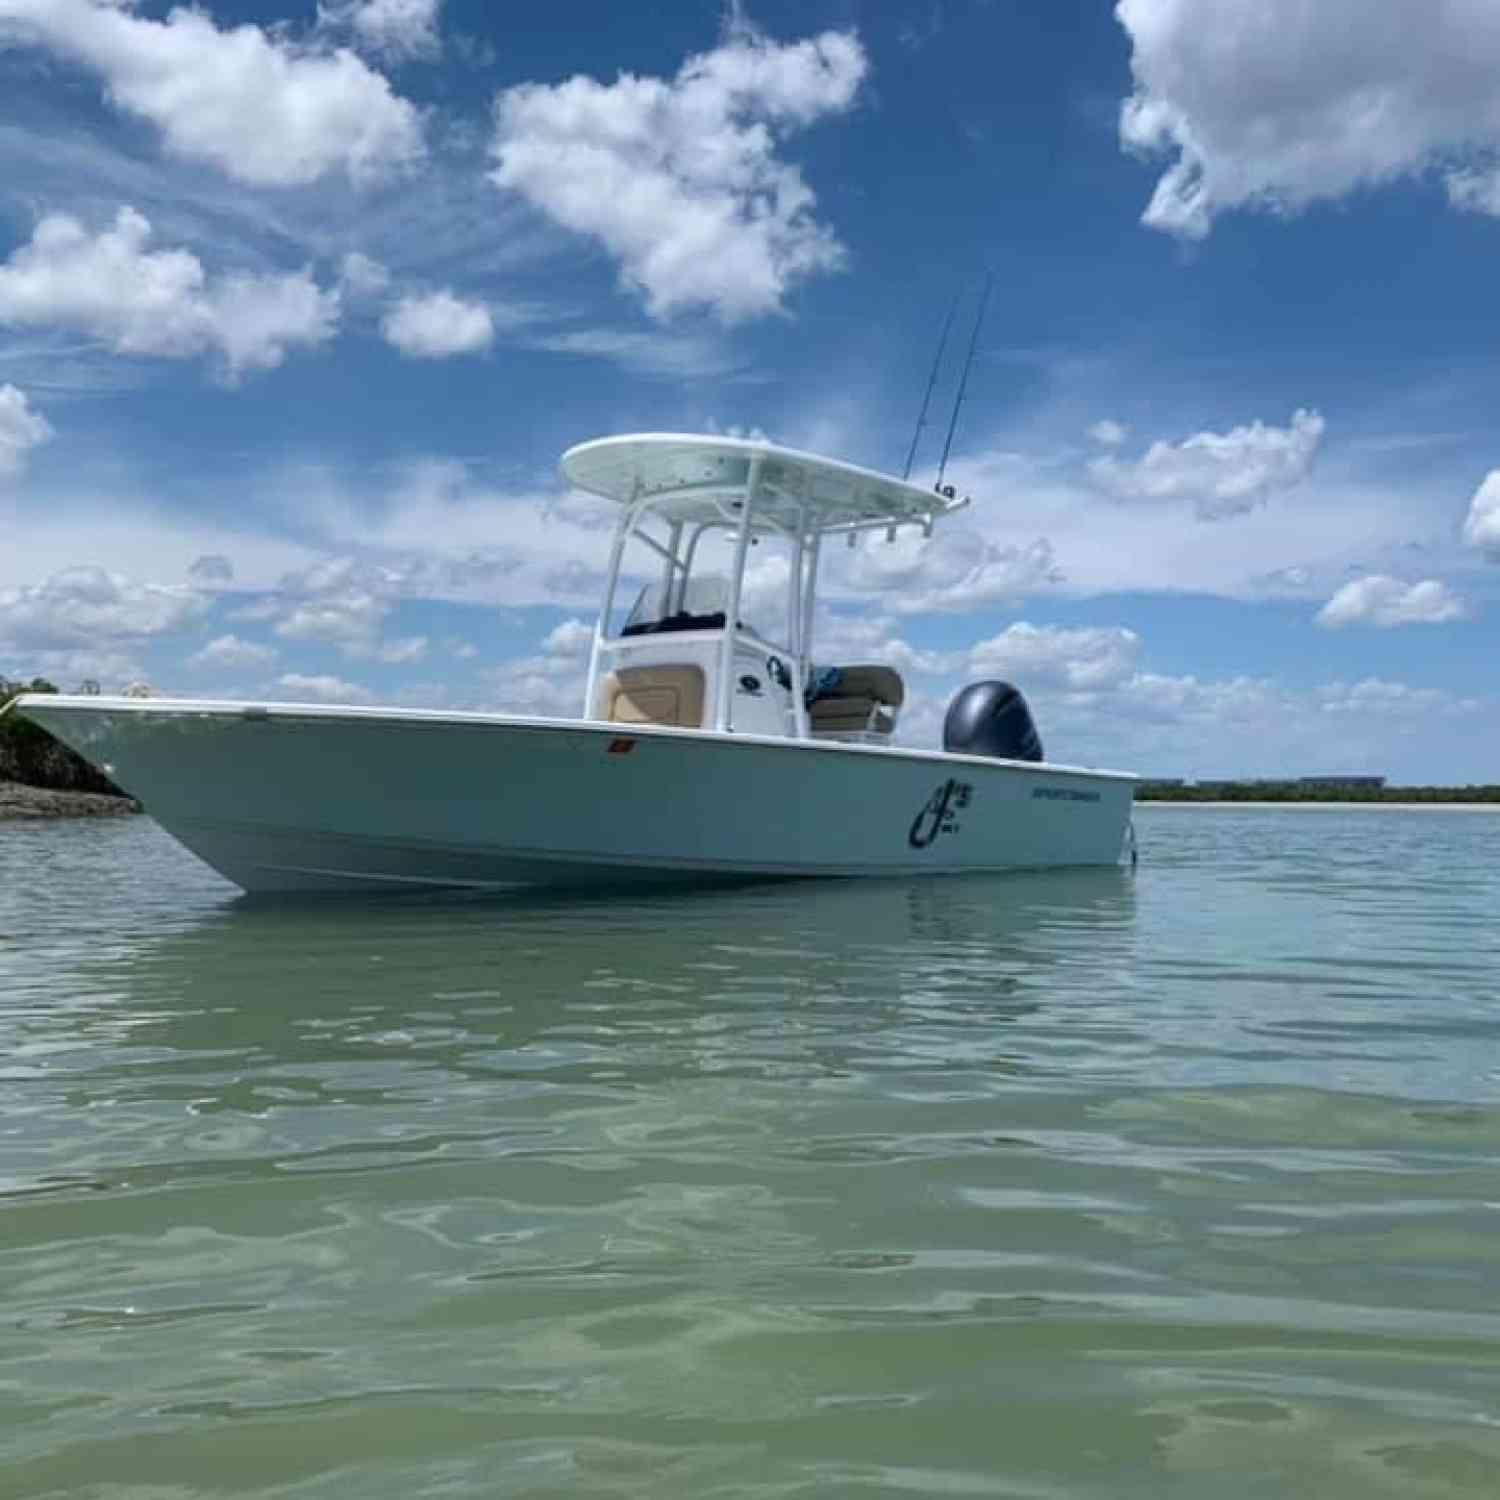 Title: Masters on the hook - On board their Sportsman Masters 227 Bay Boat - Location: Ponce Inlet, FL. Participating in the Photo Contest #SportsmanJune2020